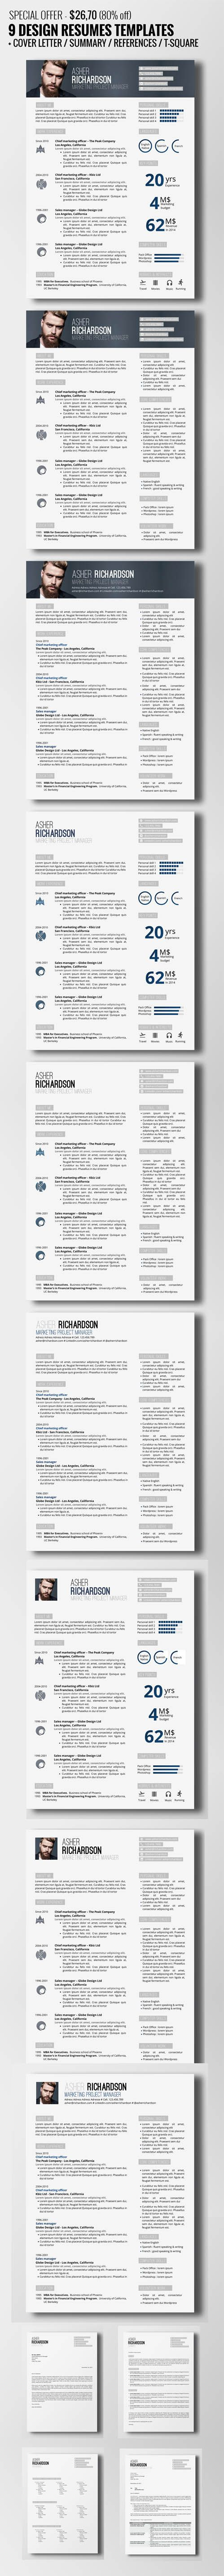 best images about resume infographic resume the perfect job seeker tool kit 9 resumes matching cover letter summary references document t square cover letter